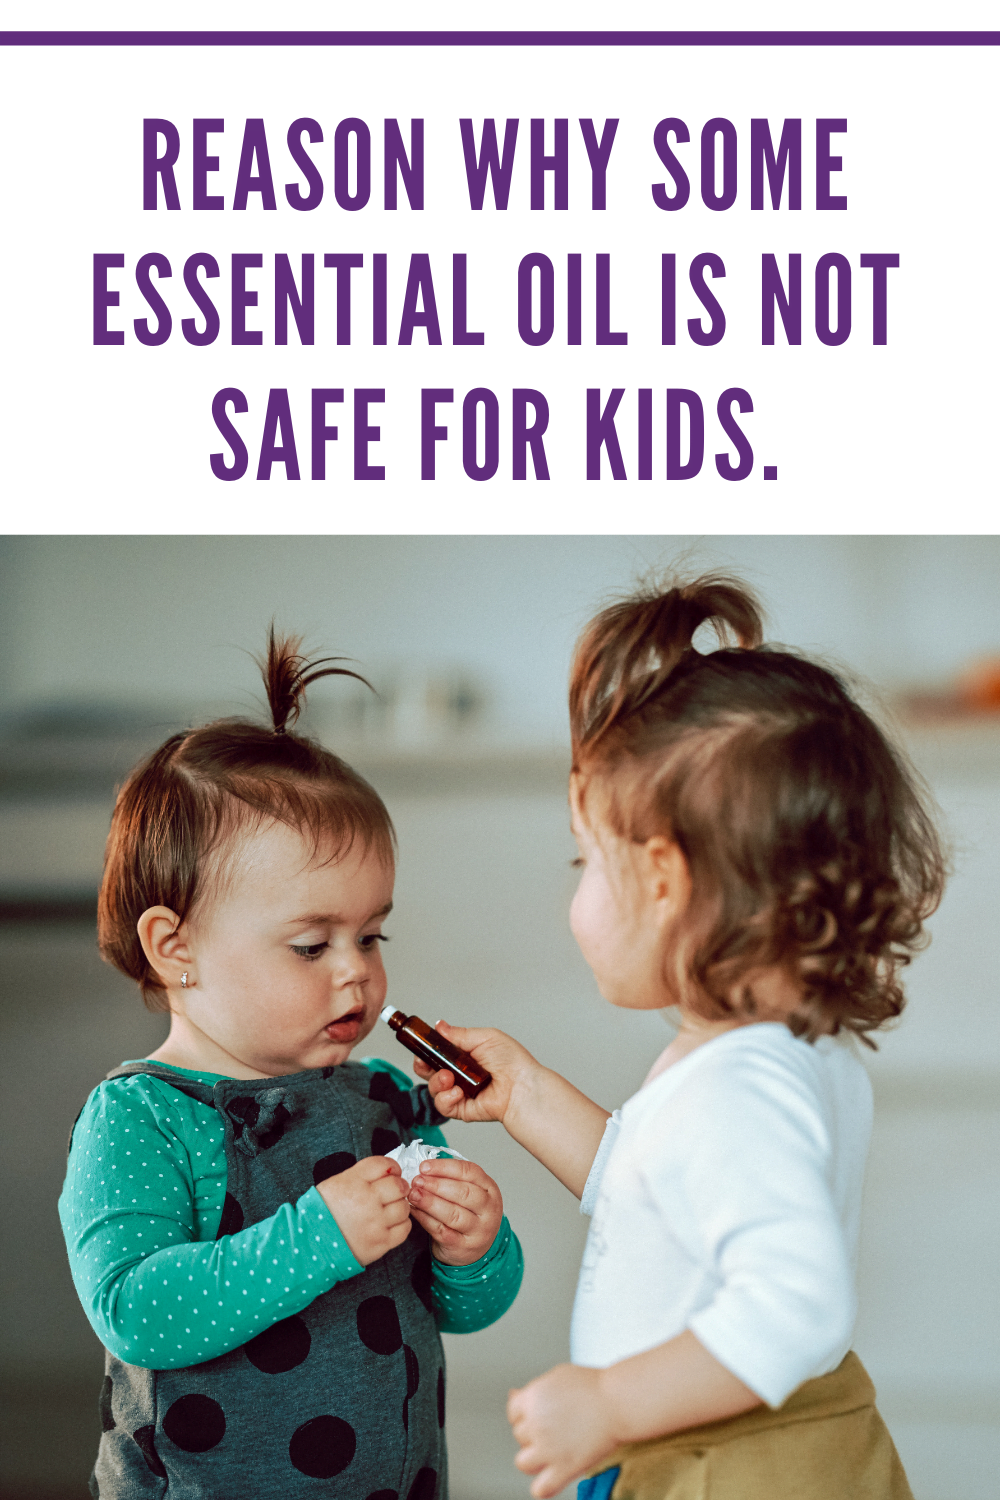 Reason why some essential oil is not safe for kids.